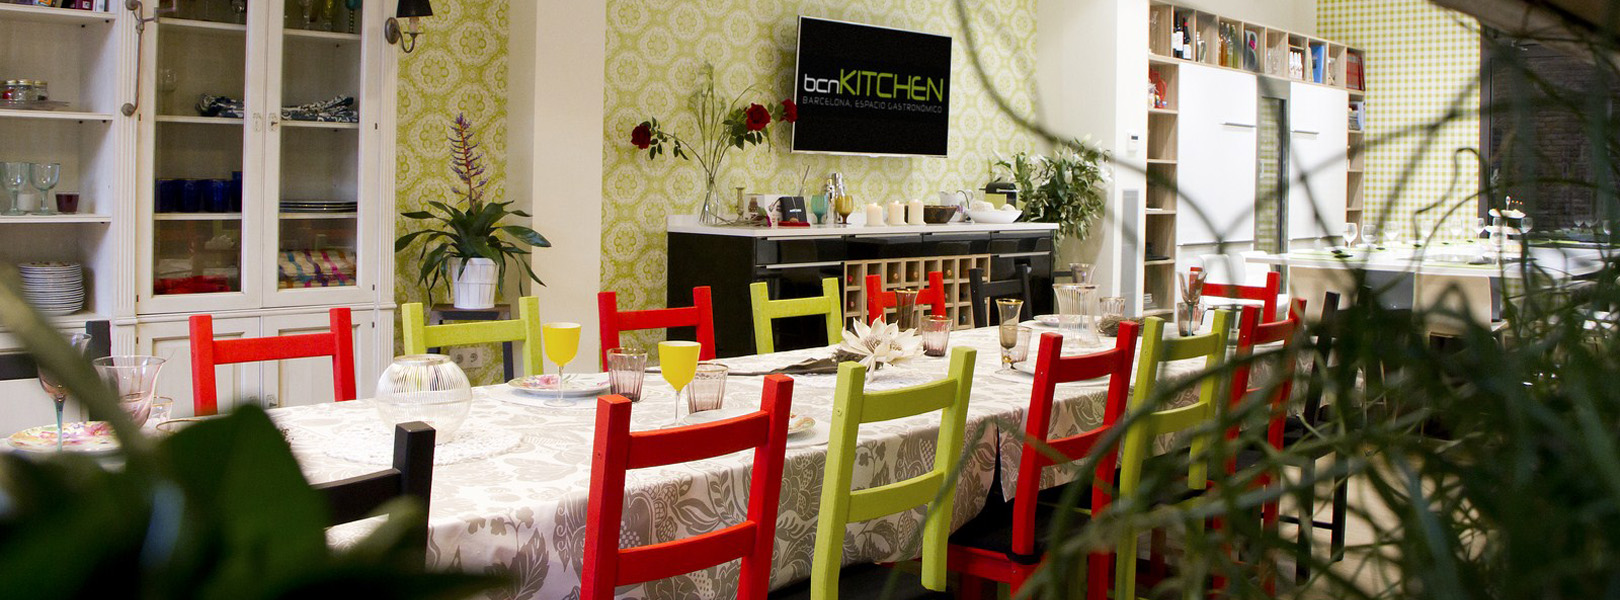 bcnKITCHEN   El Born 5